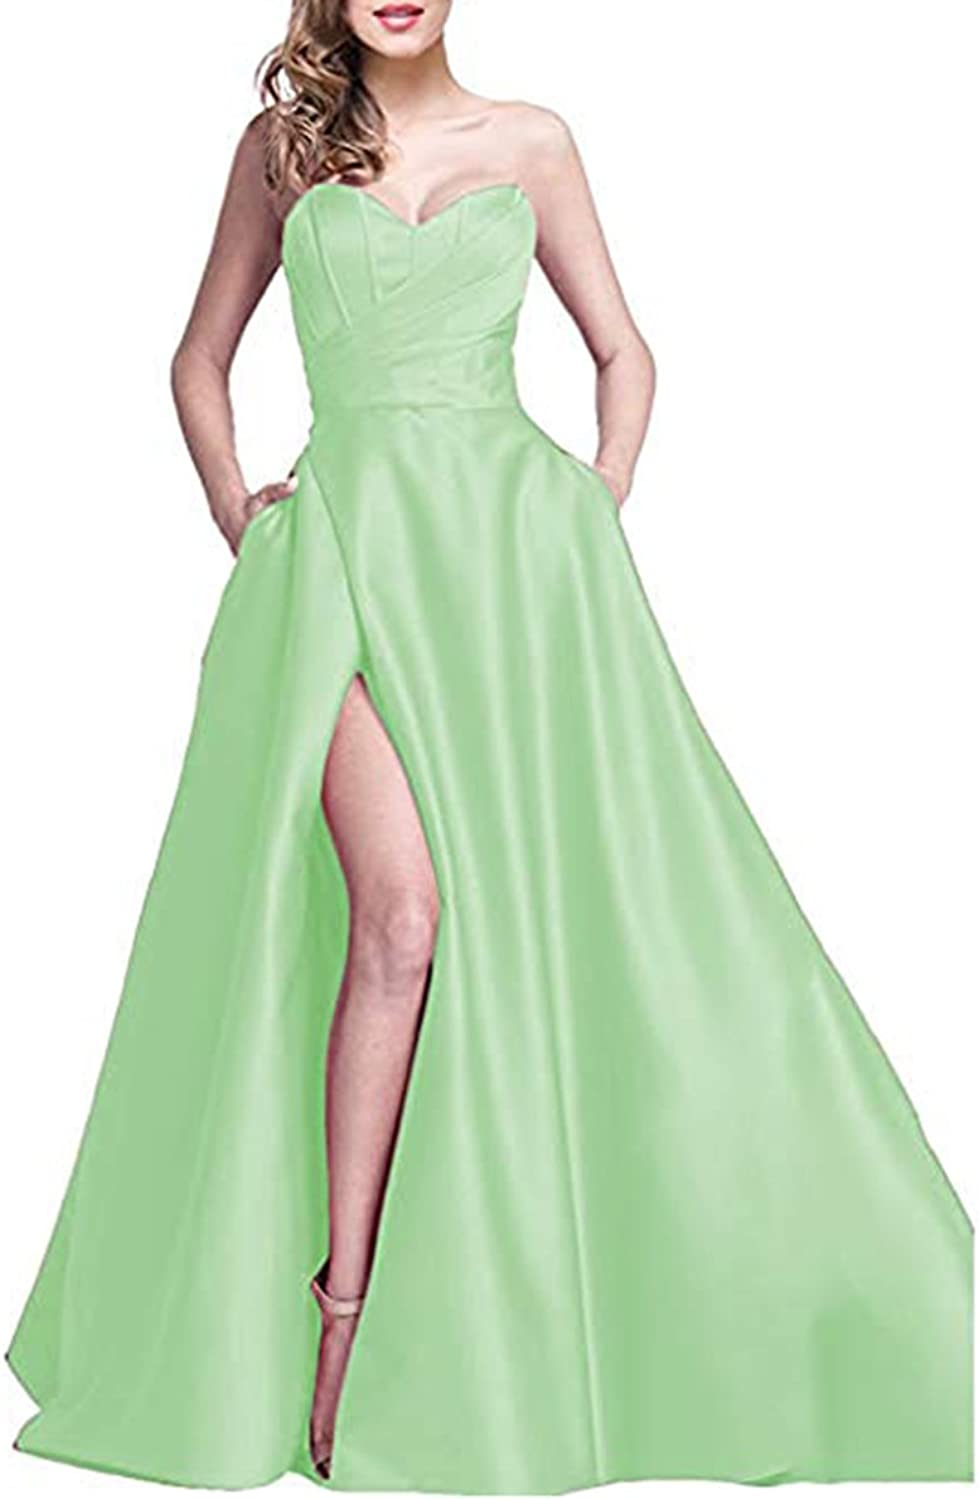 Alilith.Z Sexy Sweetheart Side Slit Beaded Prom Dresses Long Formal Evening Dresses Party Gowns for Women with Pockets